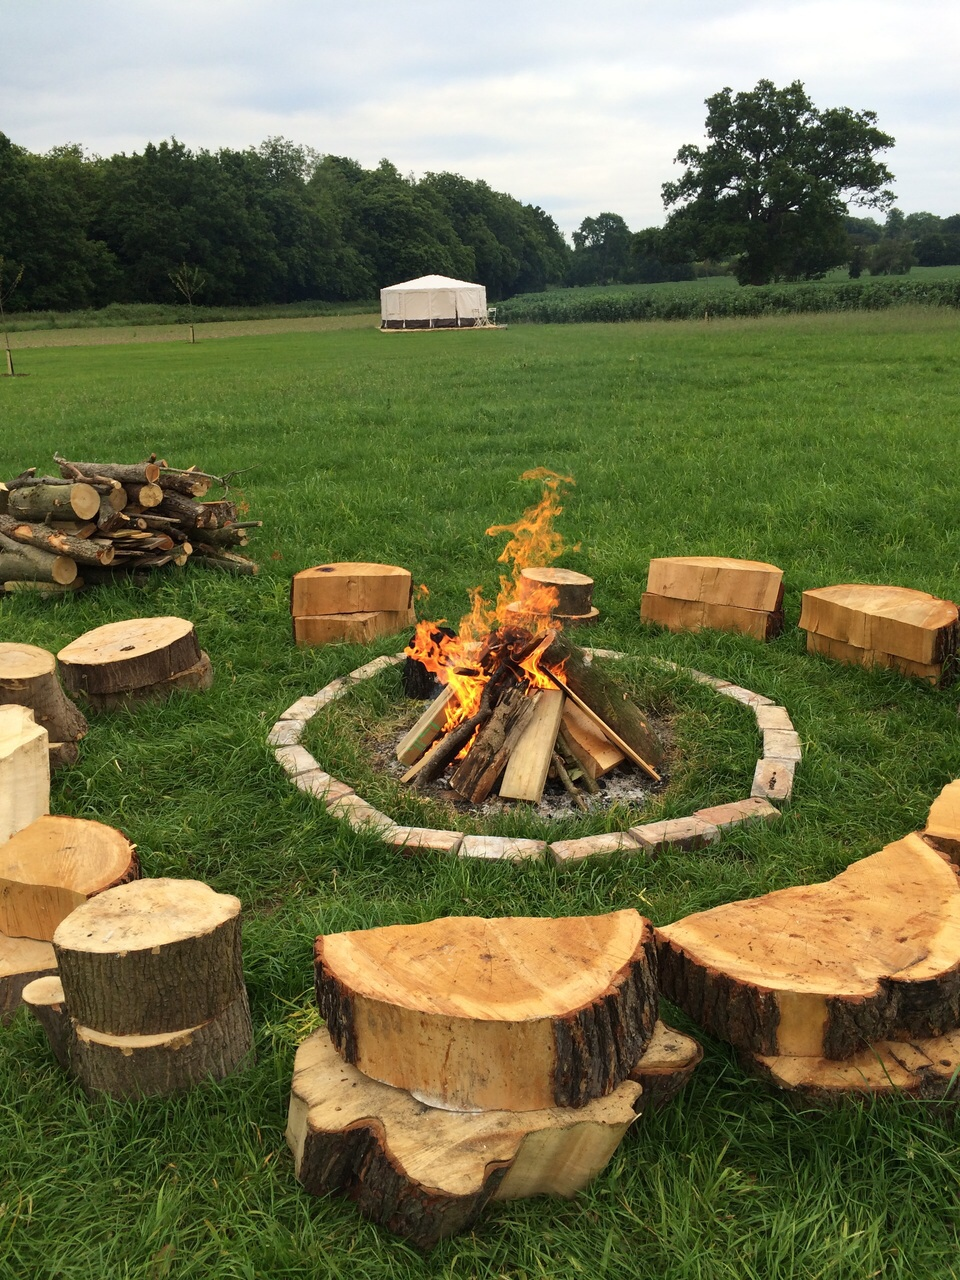 Best London glamping campfire